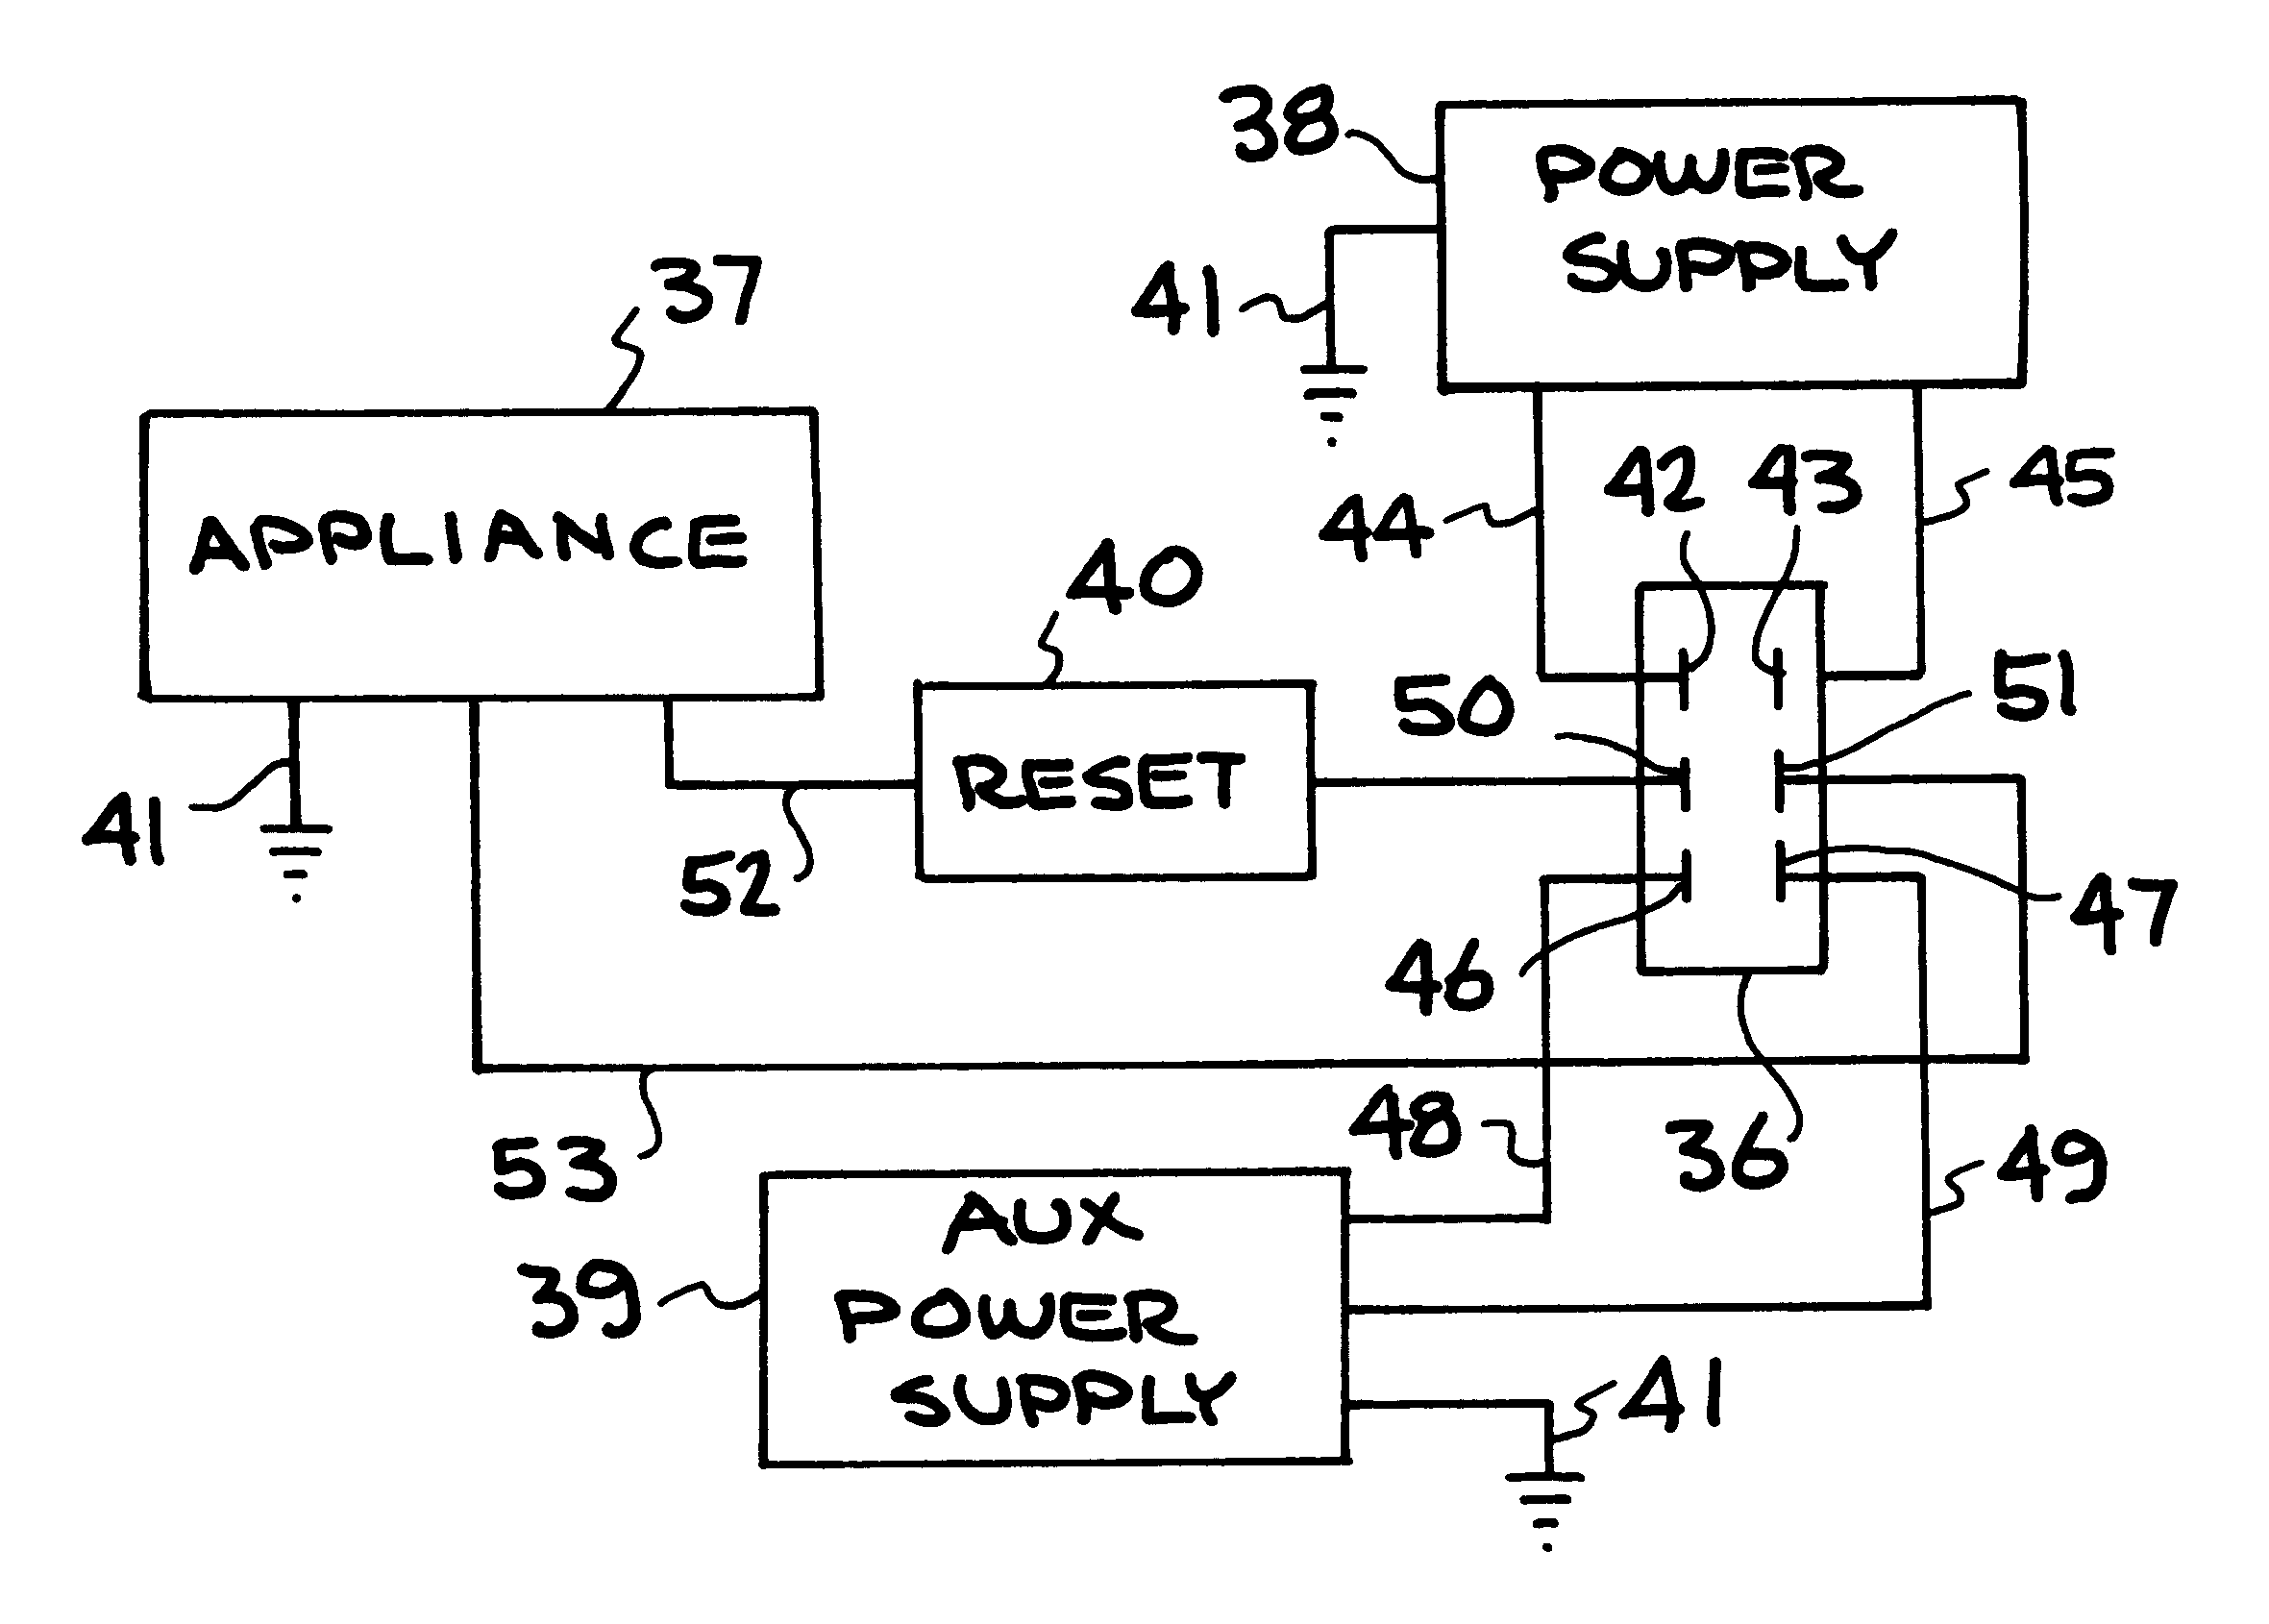 patent us6169340 - electrical junction box for auxiliary power